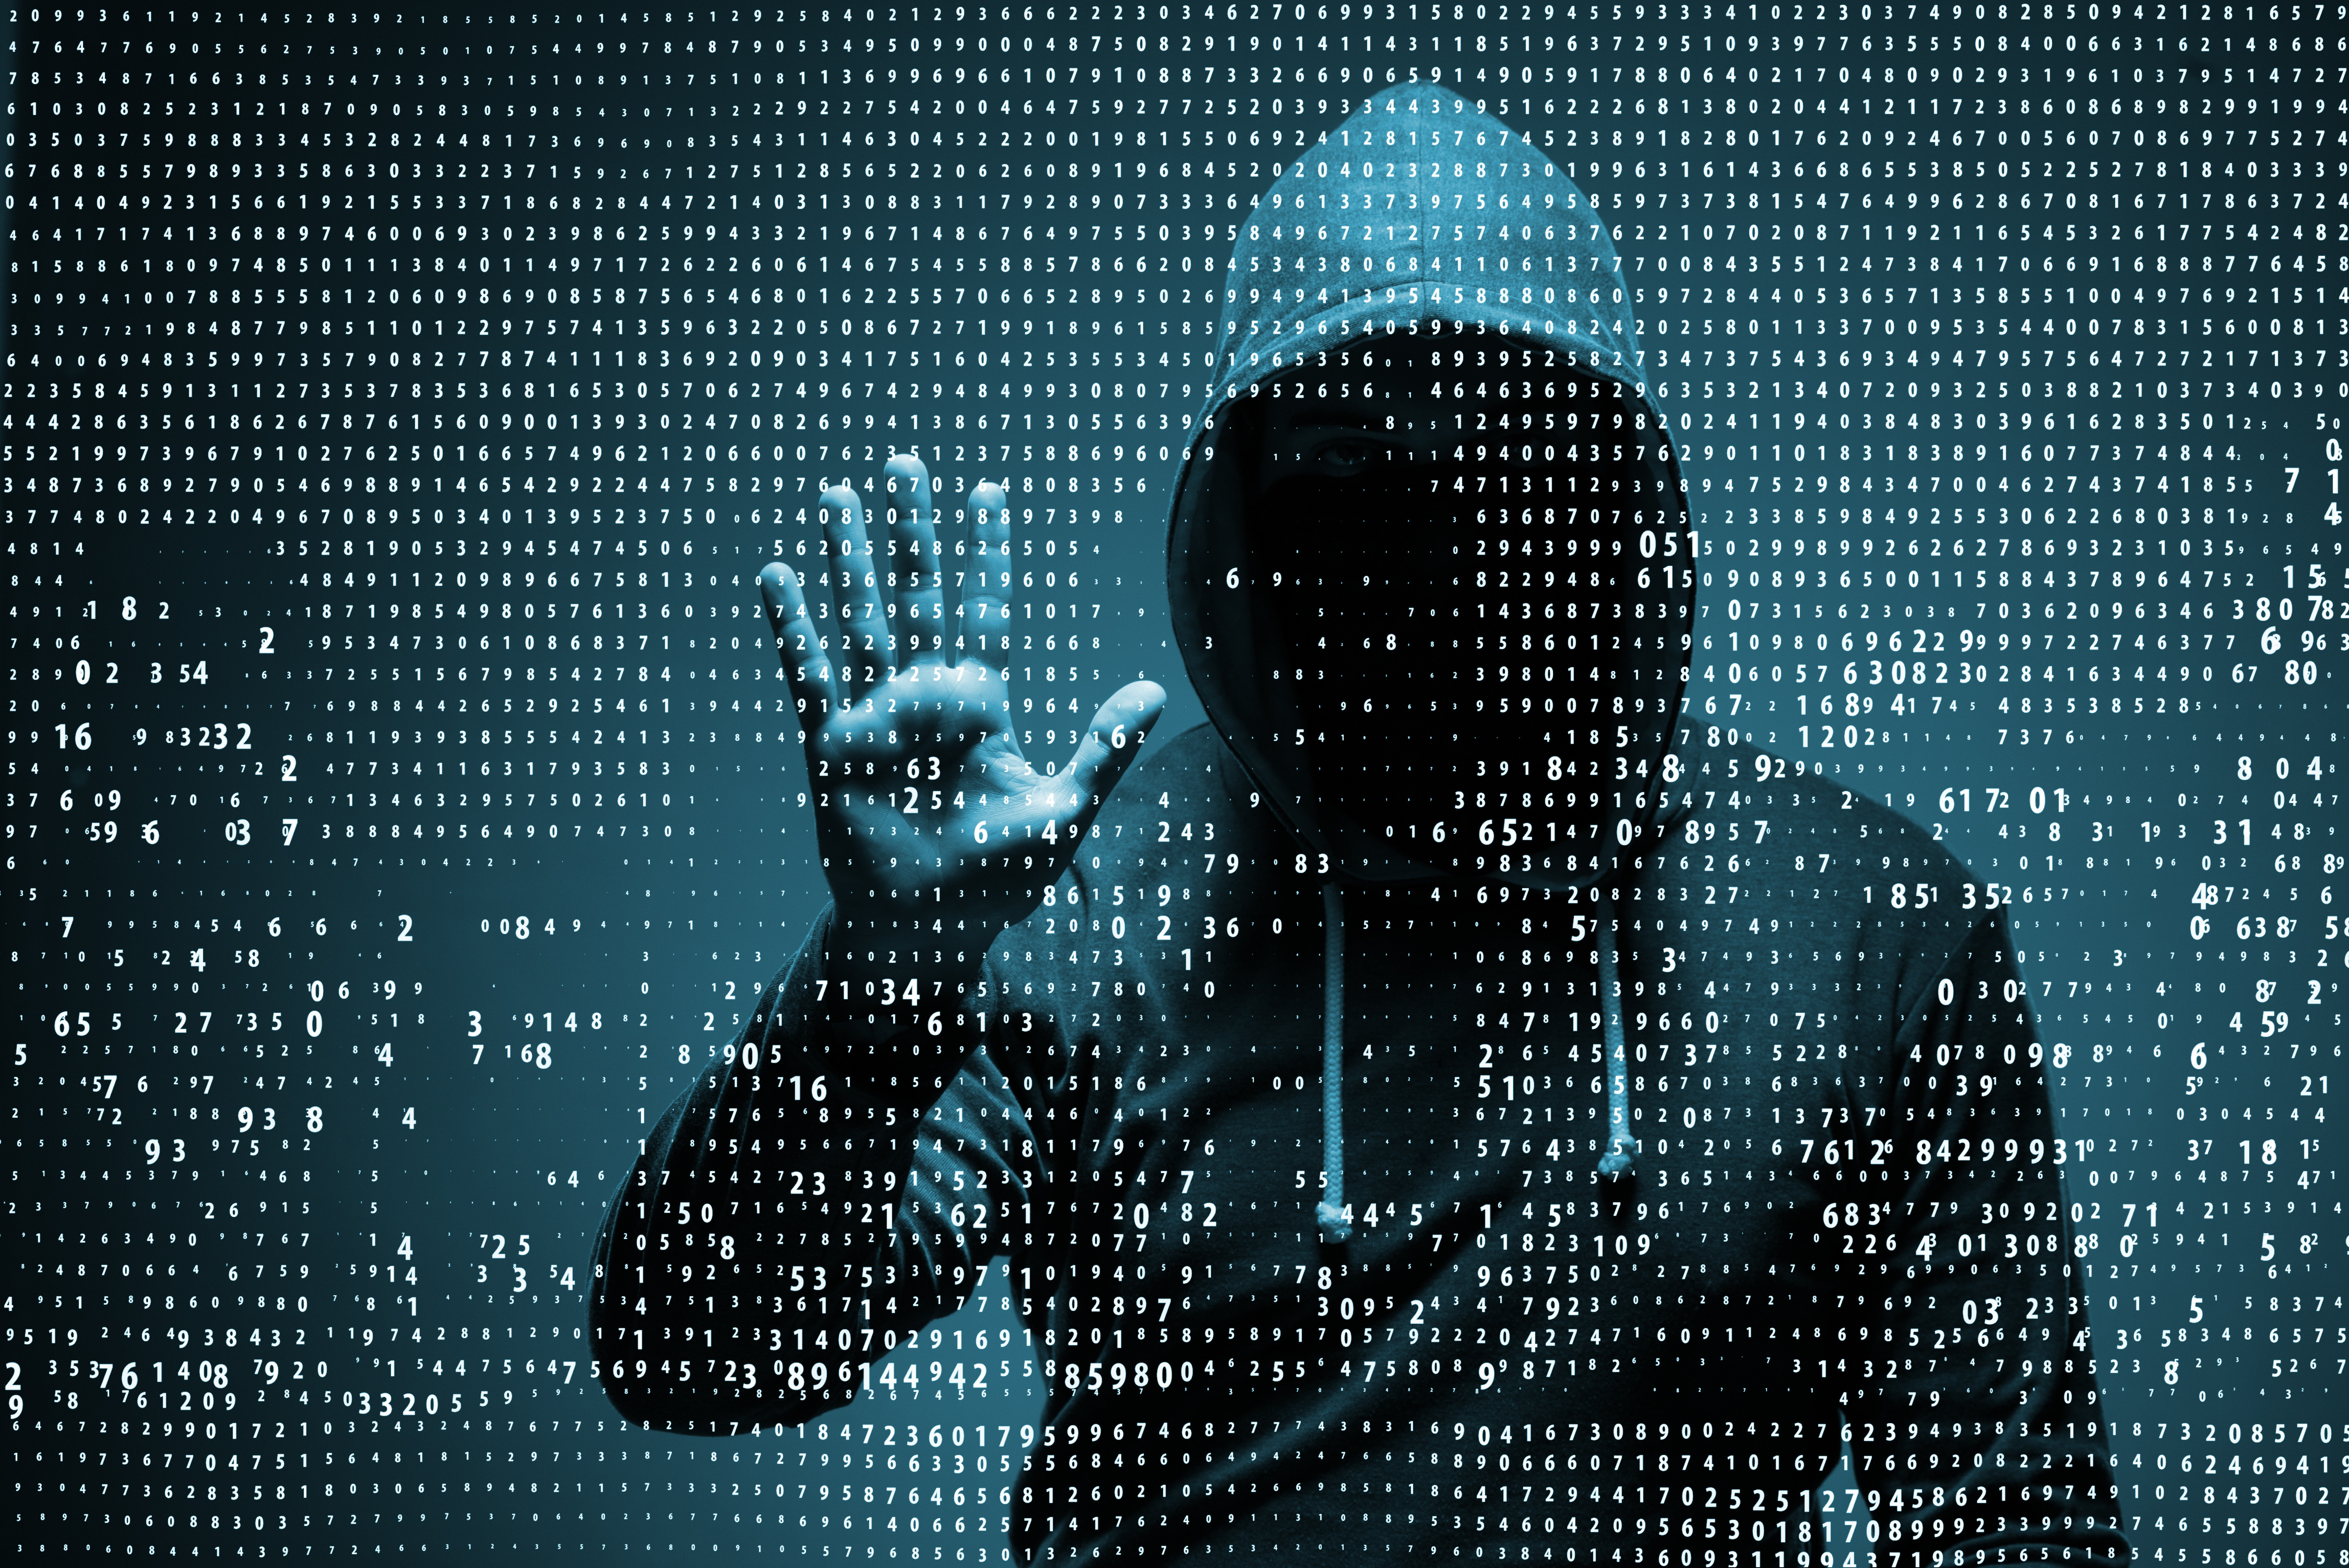 White Hat Hacking with TDL | Social Engineering Attacks